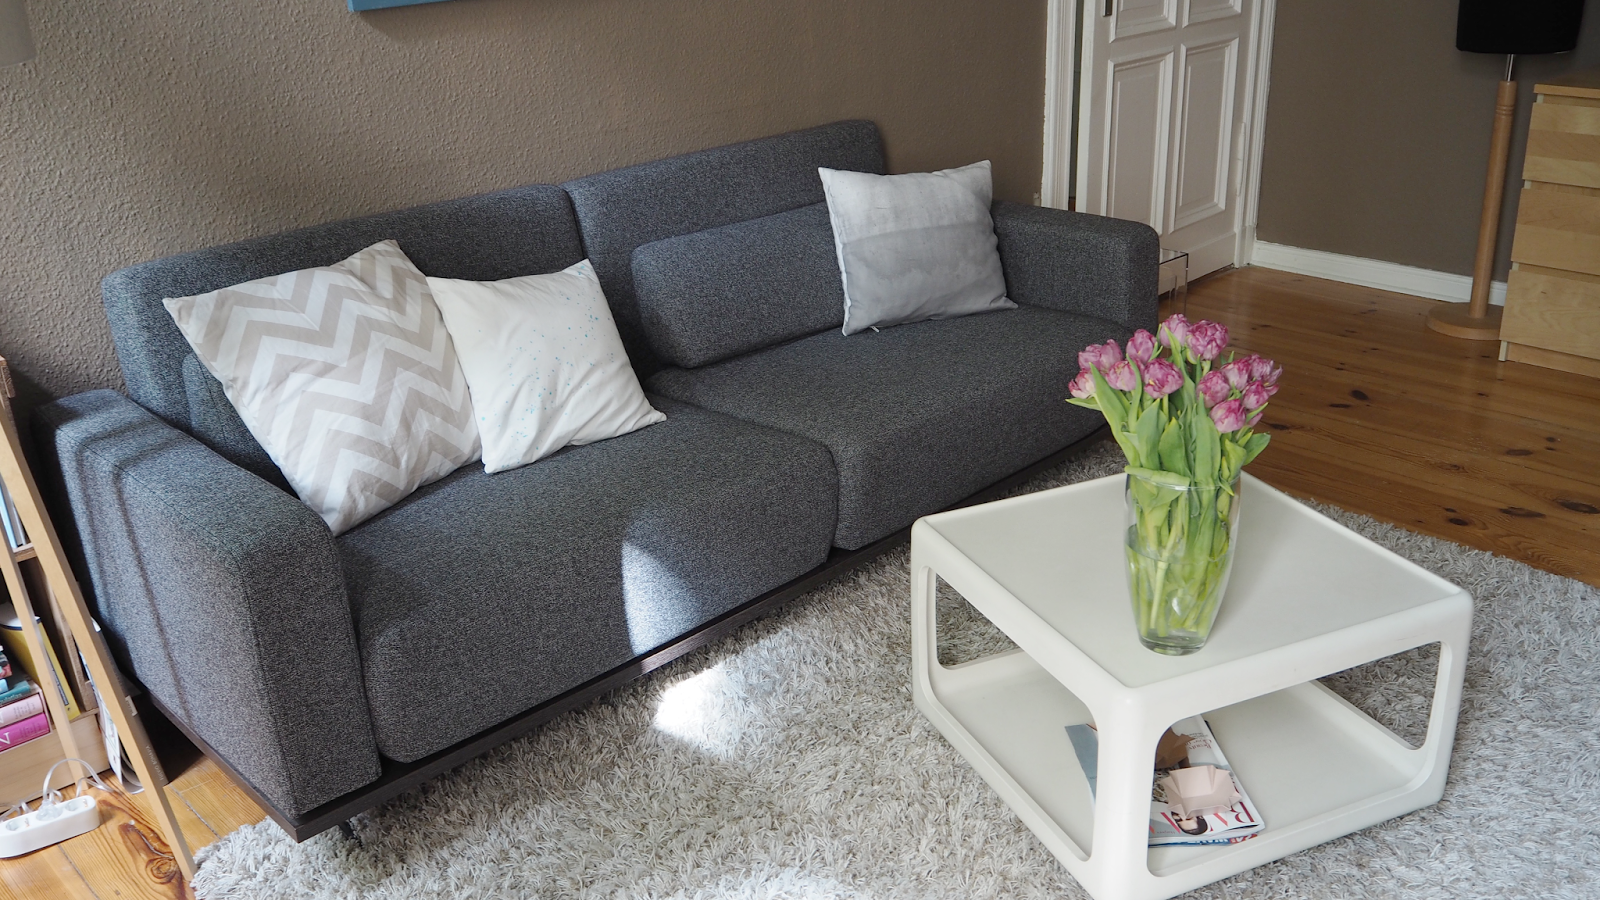 Schlafsofa Copperfield mein liebster ort in unserer wohnung copenhagen living rooms and